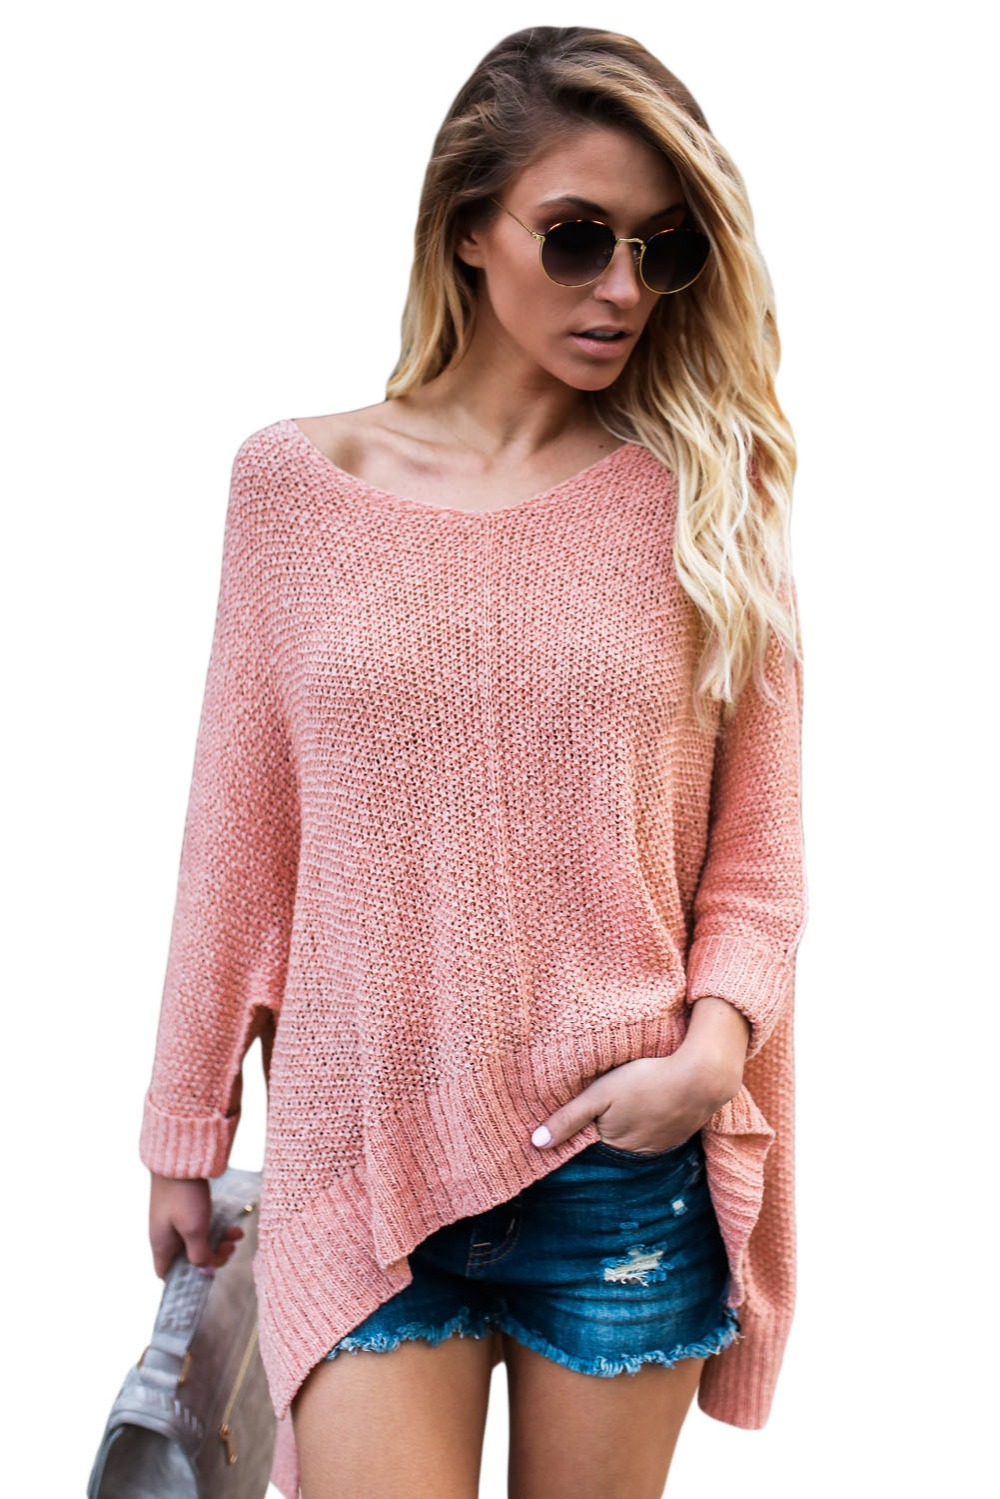 Pink-Oversized-Knit-High-low-Slit-Side-Sweater-LC27680-10-1